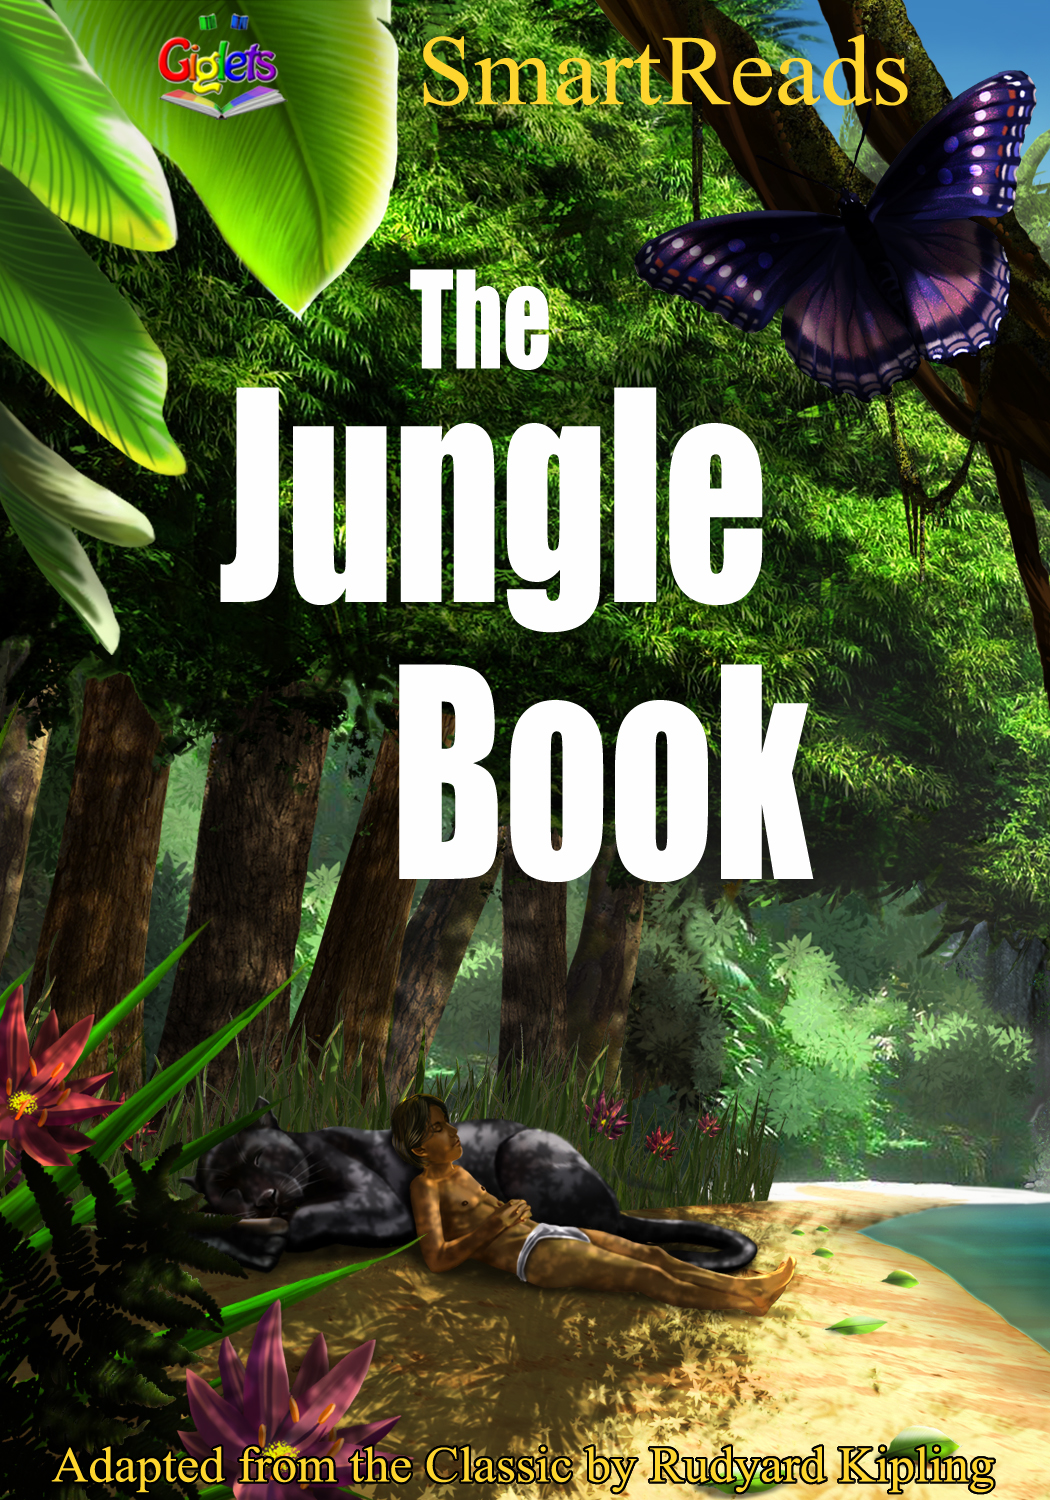 SmartReads The Jungle Book Adapted from the Classic by Rudyard Kipling